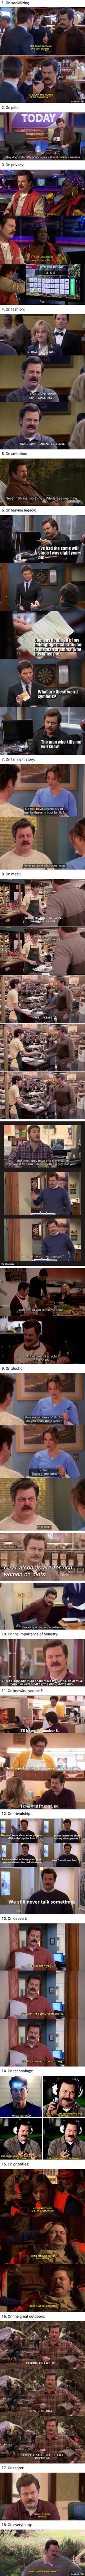 Ron Swanson's Jokes That Are Never Not Funny